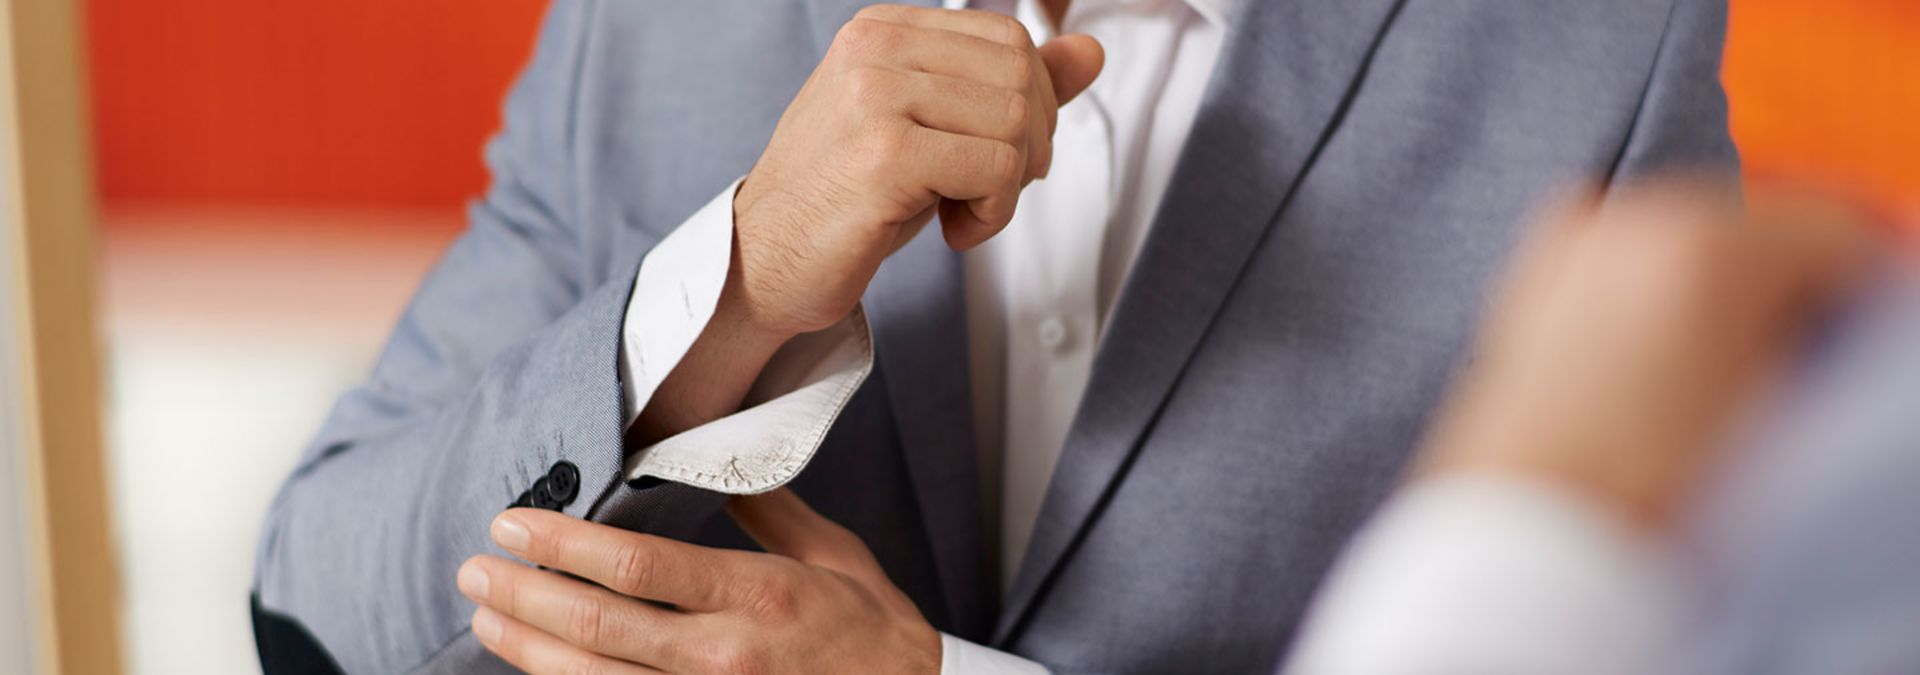 A man in grey suit adjusting his cuff-links